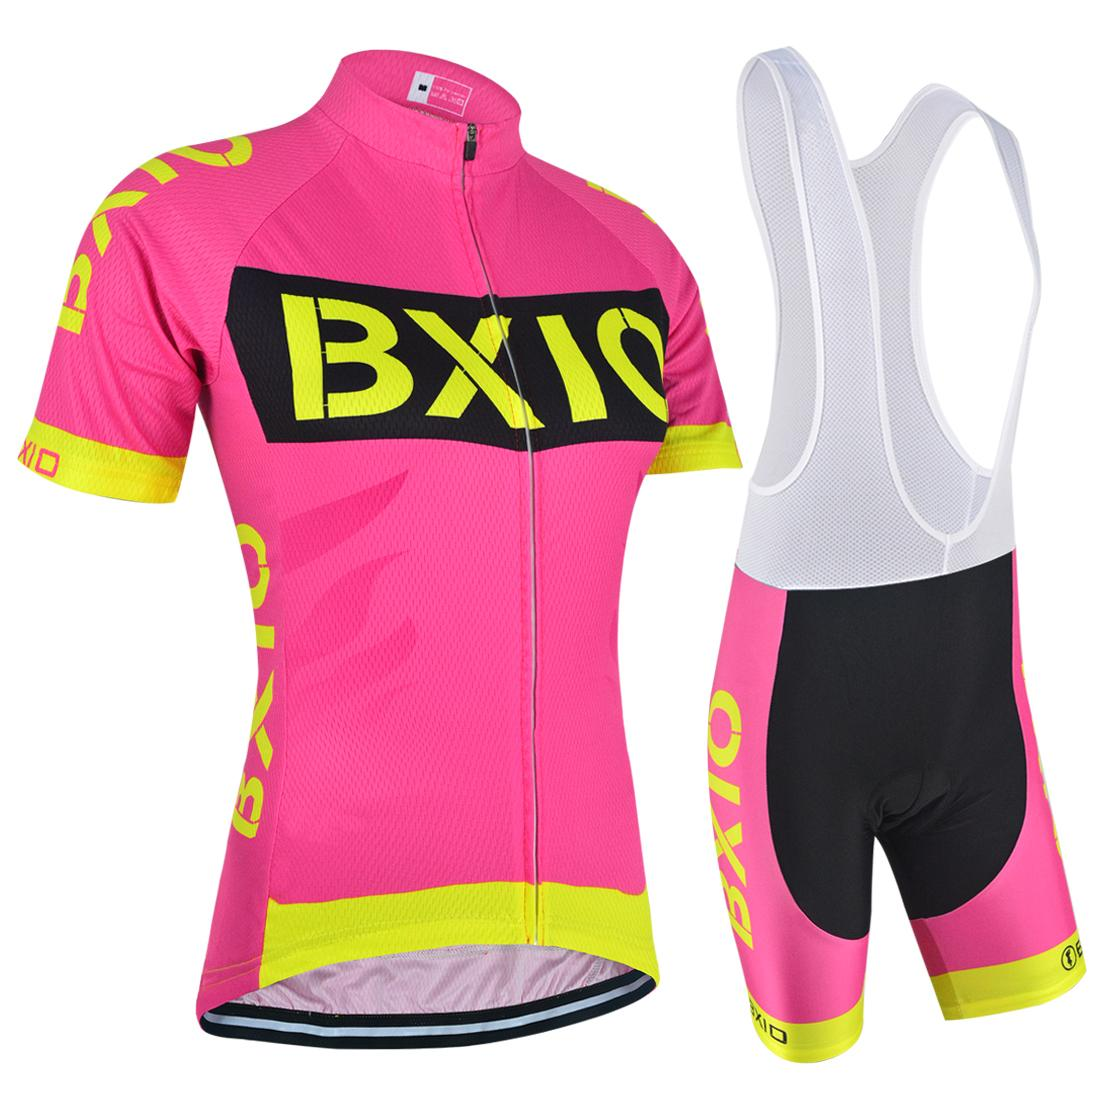 283d856a4a BXIO 2017 New Cycling Jerseys Pink Women Bicycle Clothing Hot Summer  Indispensable Outdoor Sports Bike Clothing Ropa Ciclismo BX 147 Cycling  Bibs Cycling ...